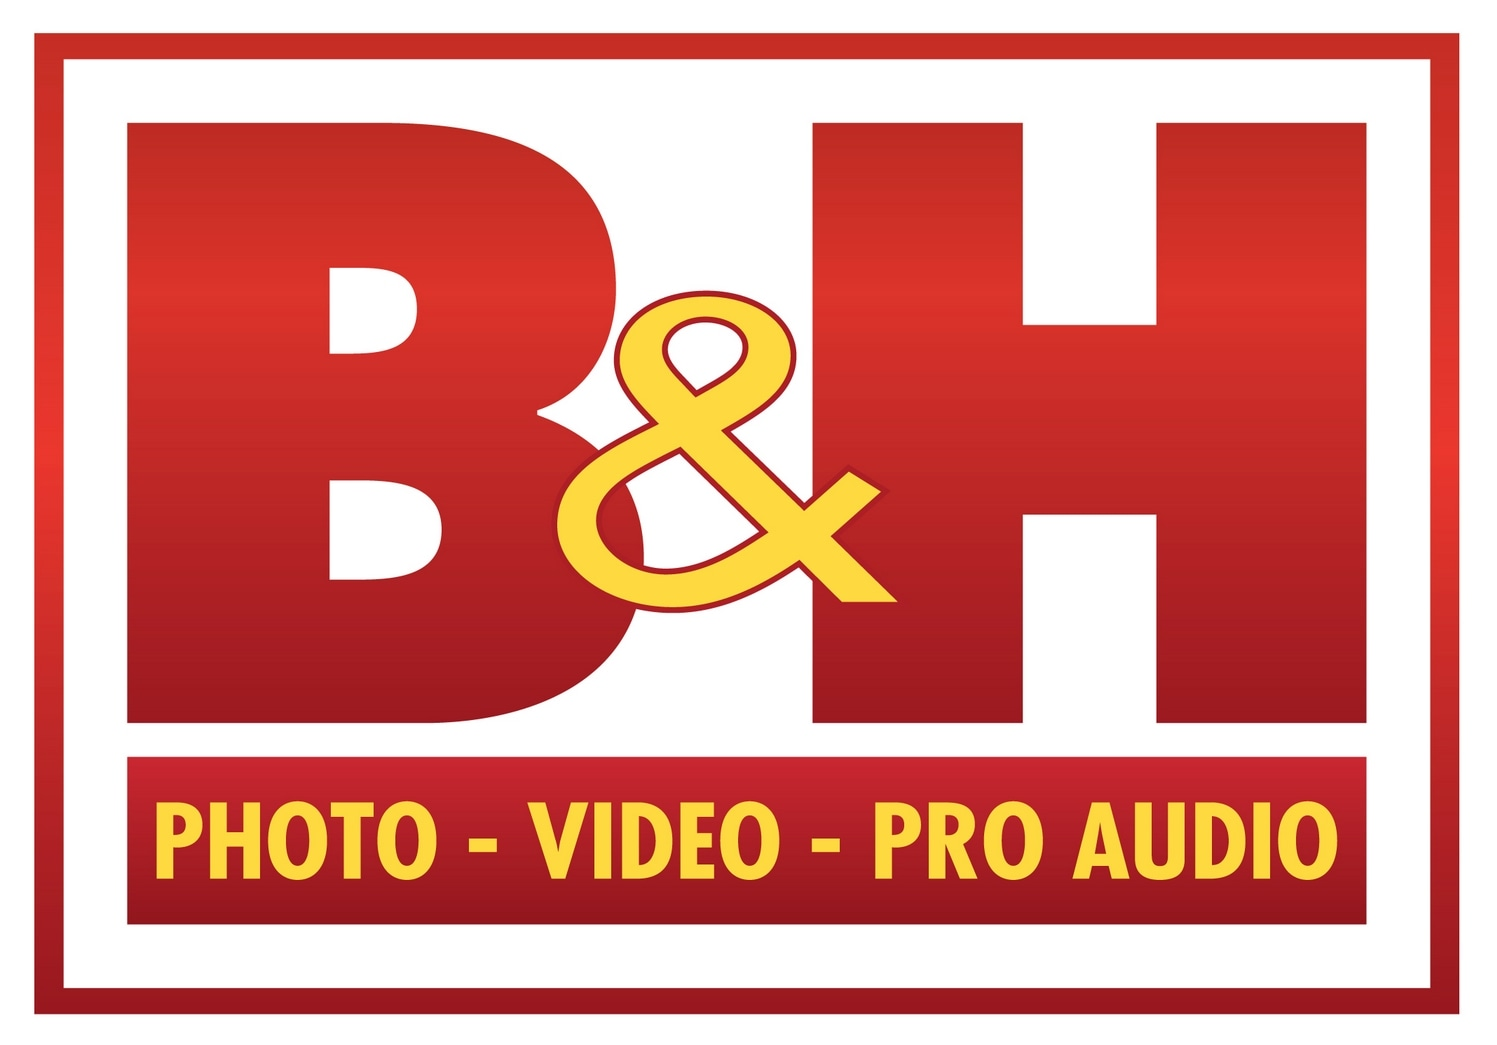 More B&H Photo deals